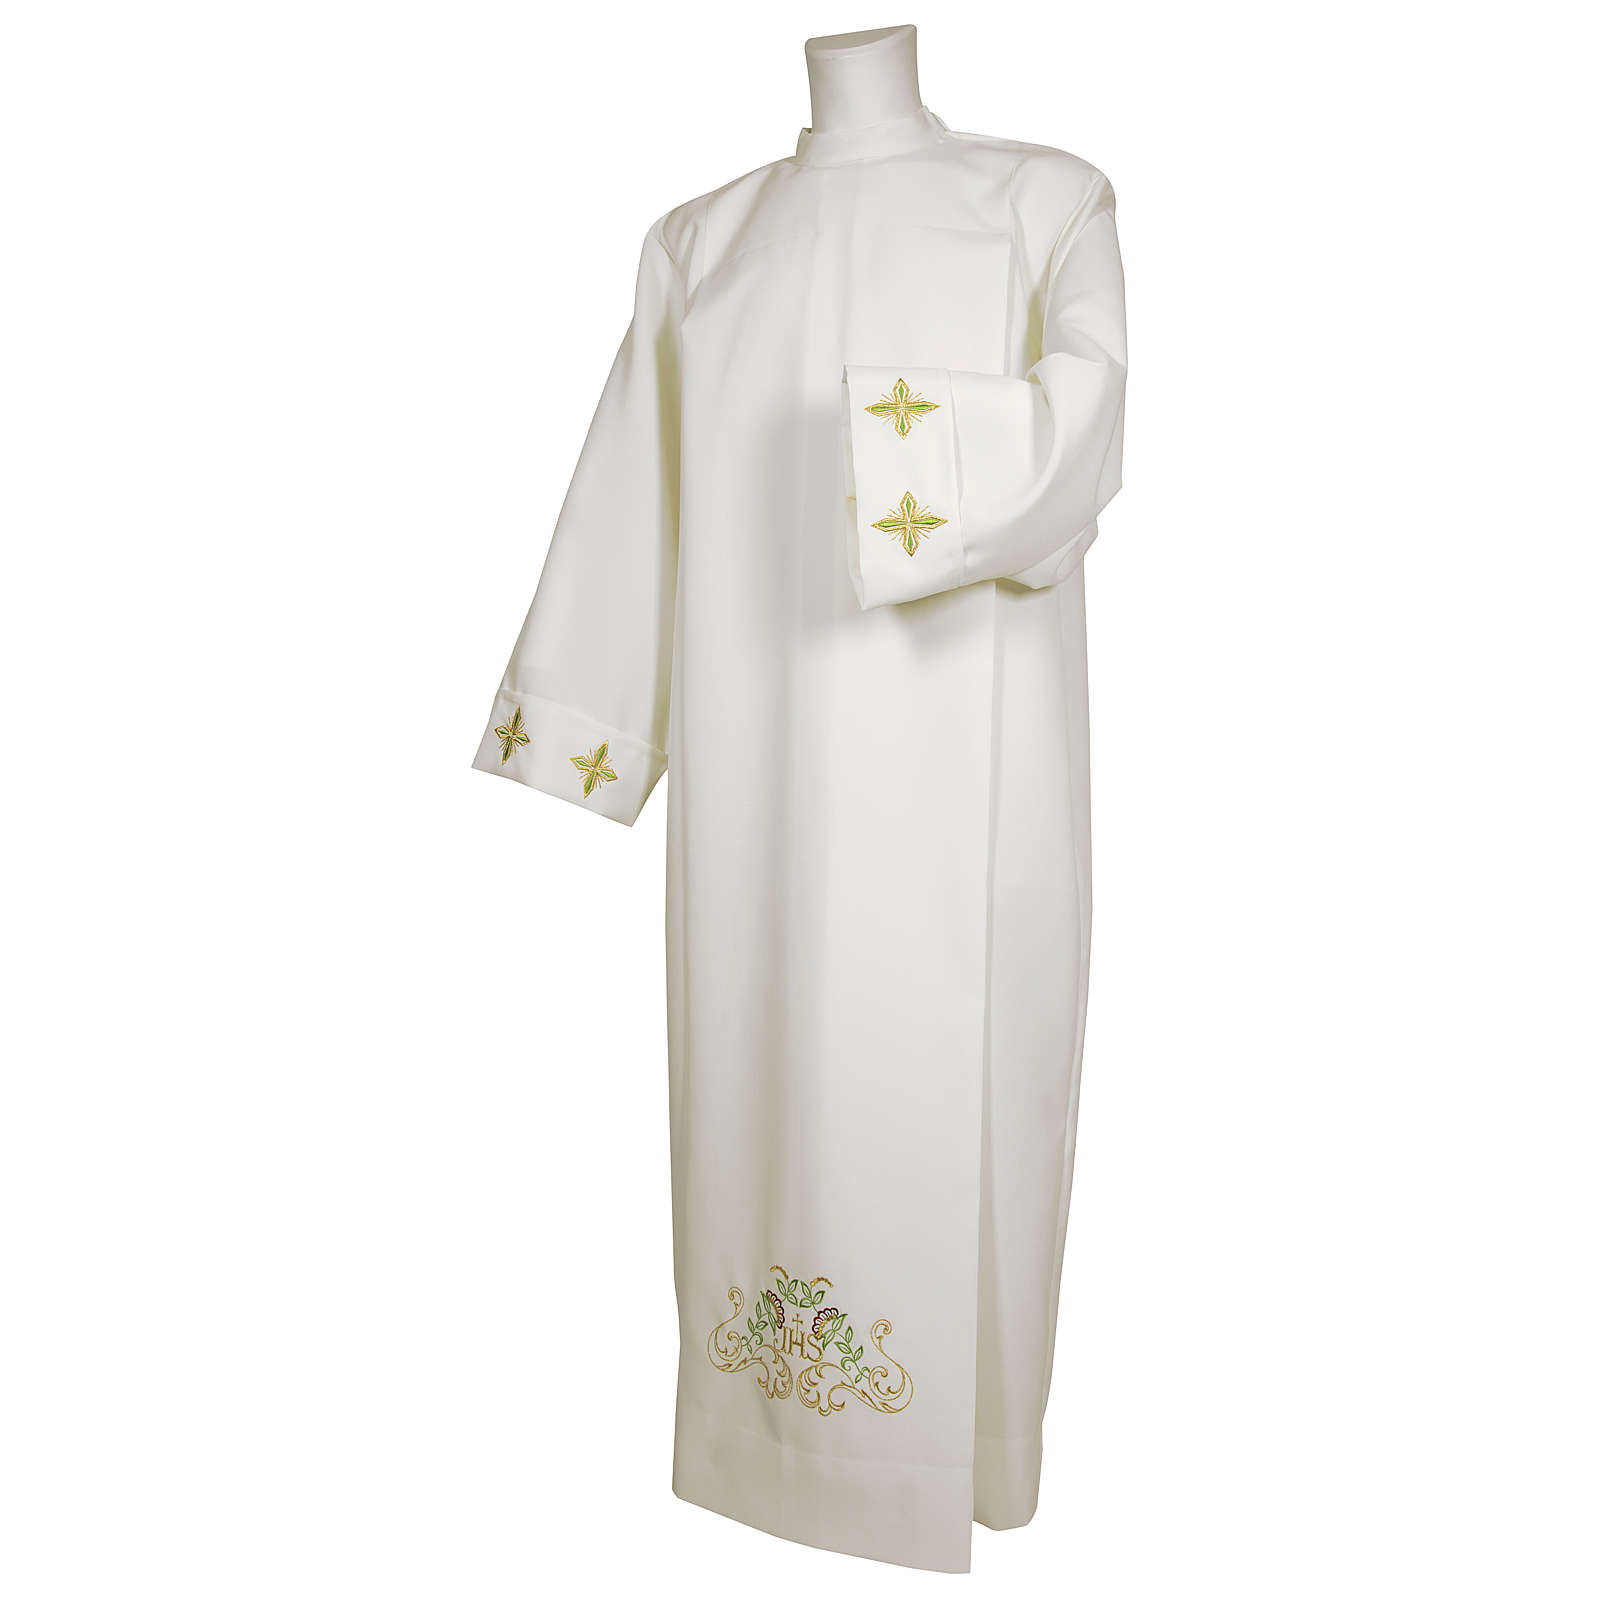 White alb 65% polyester 35% cotton with cross, flower decorations and zip on the front 4